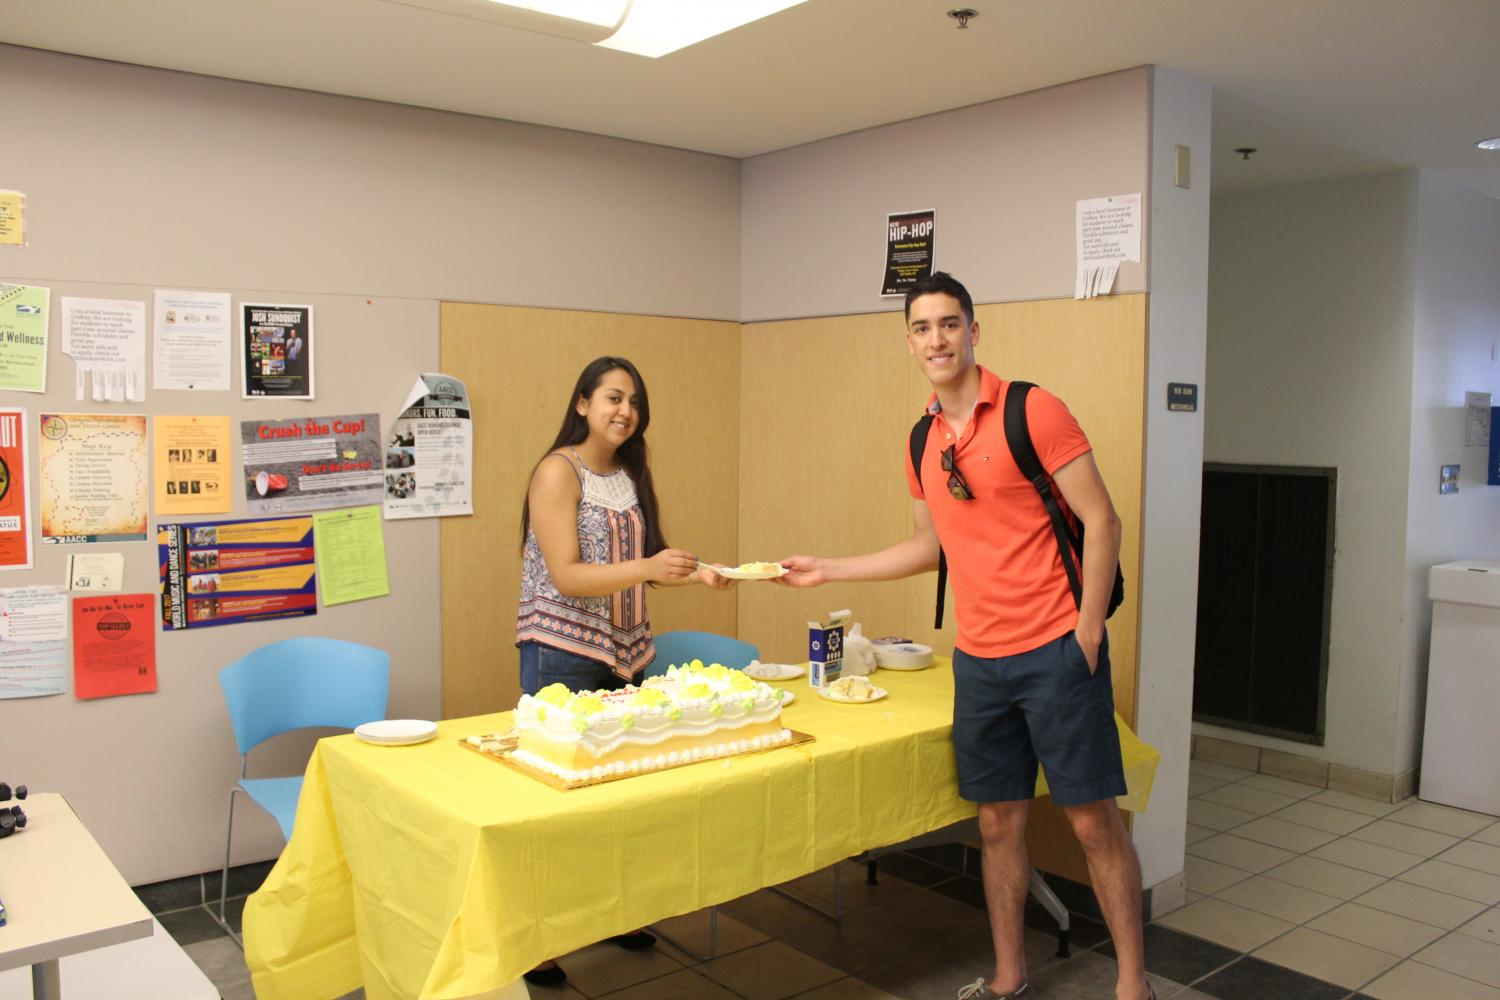 Diana Perez, president of Latino Club, is handing out tres leches cake in honor of Hispanic Heritage month.